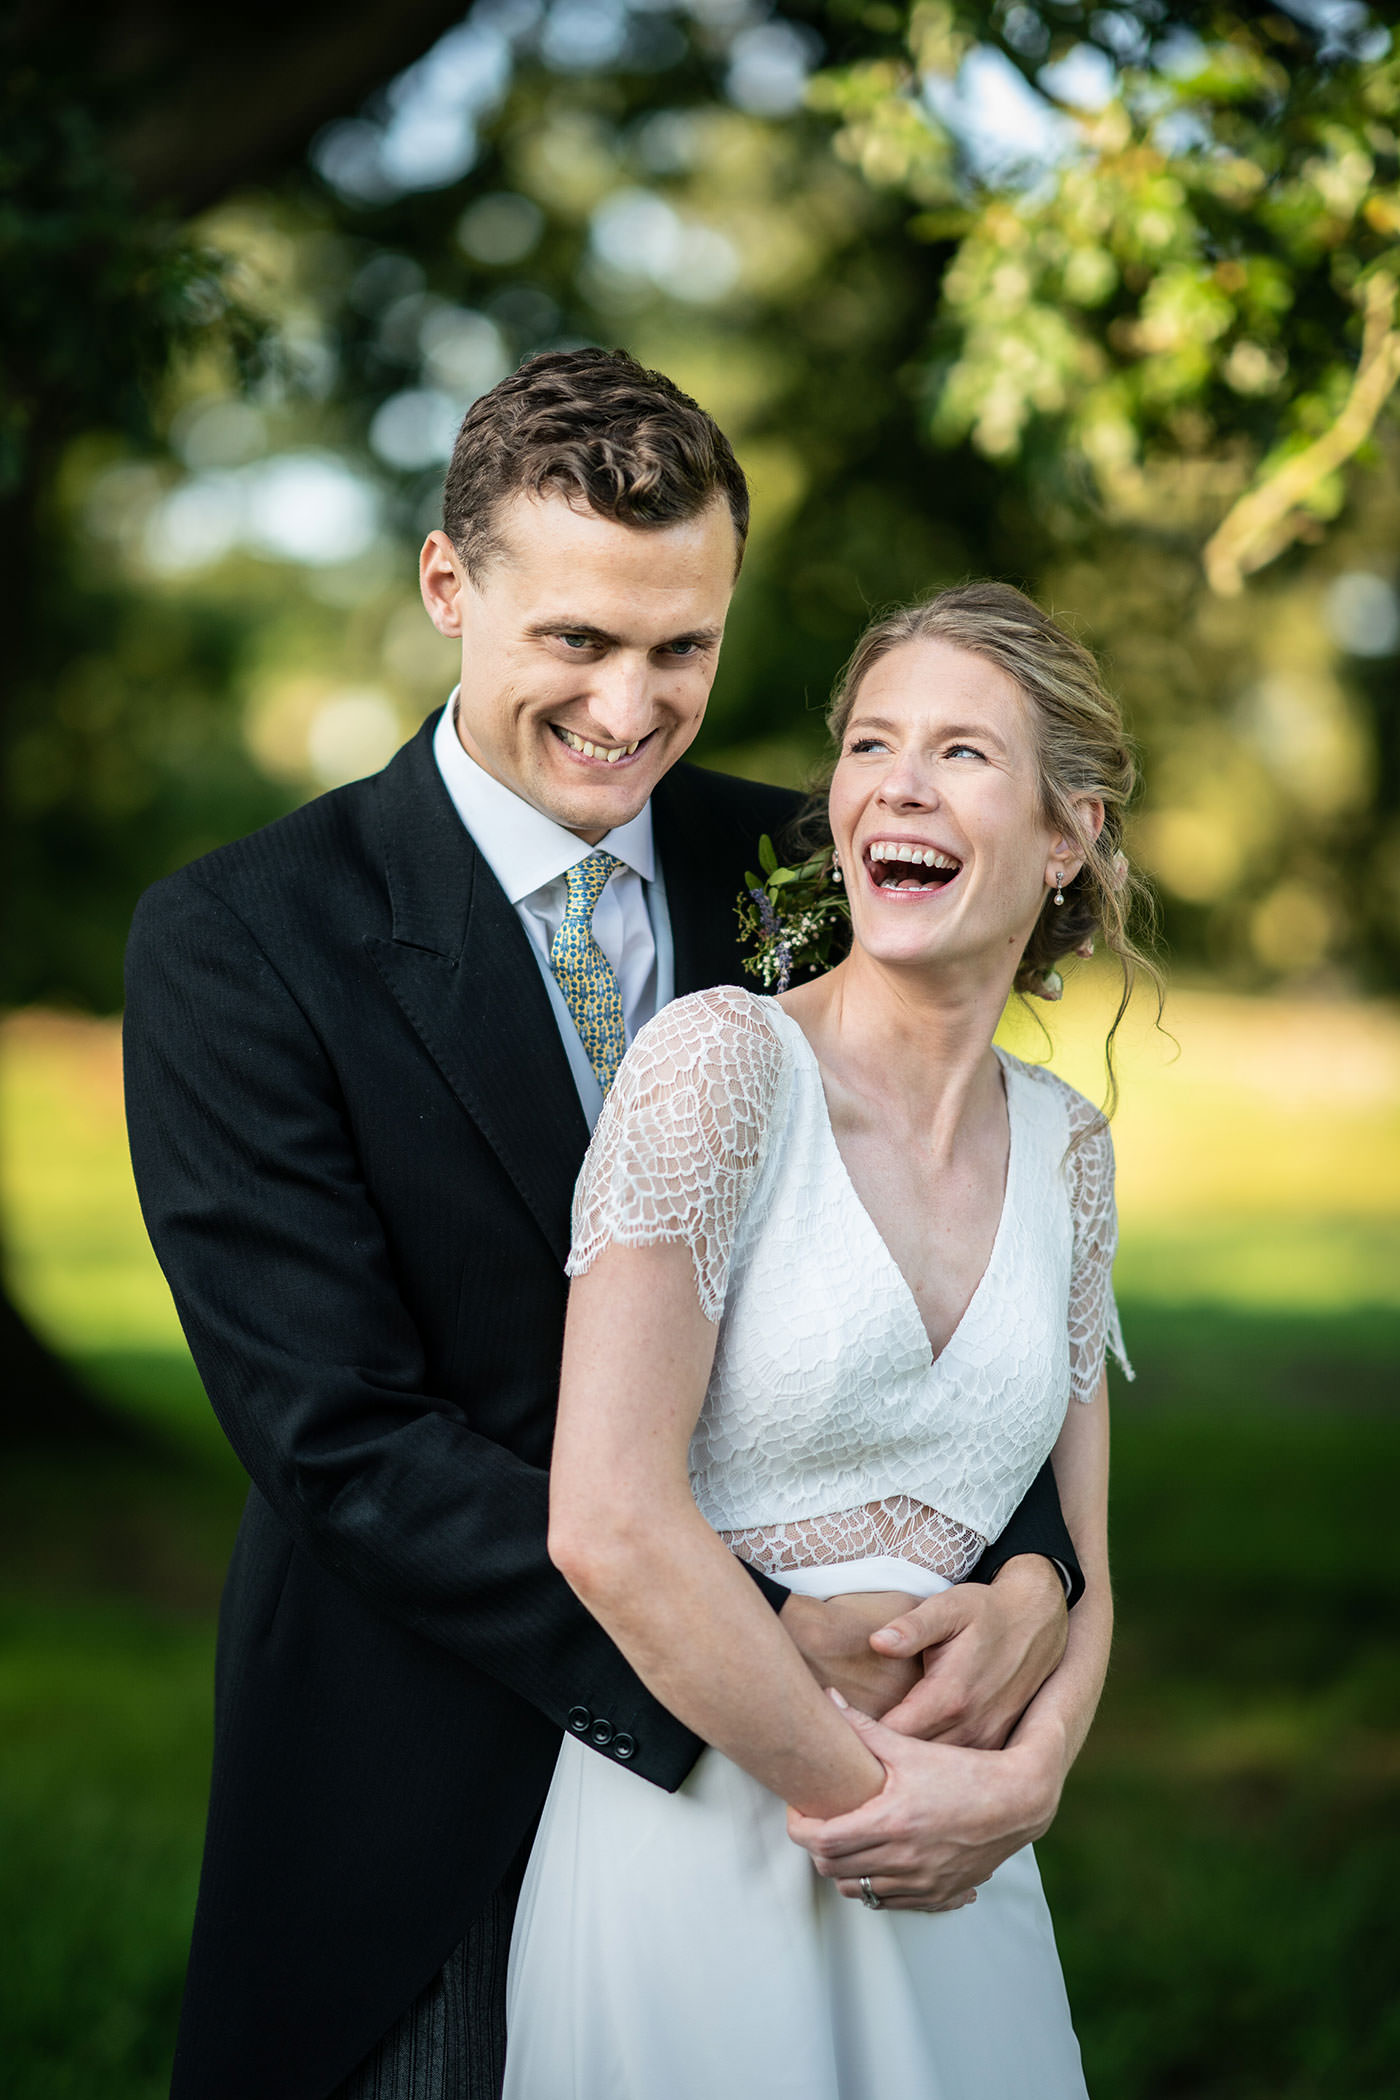 Laughing Couple Wedding Photos